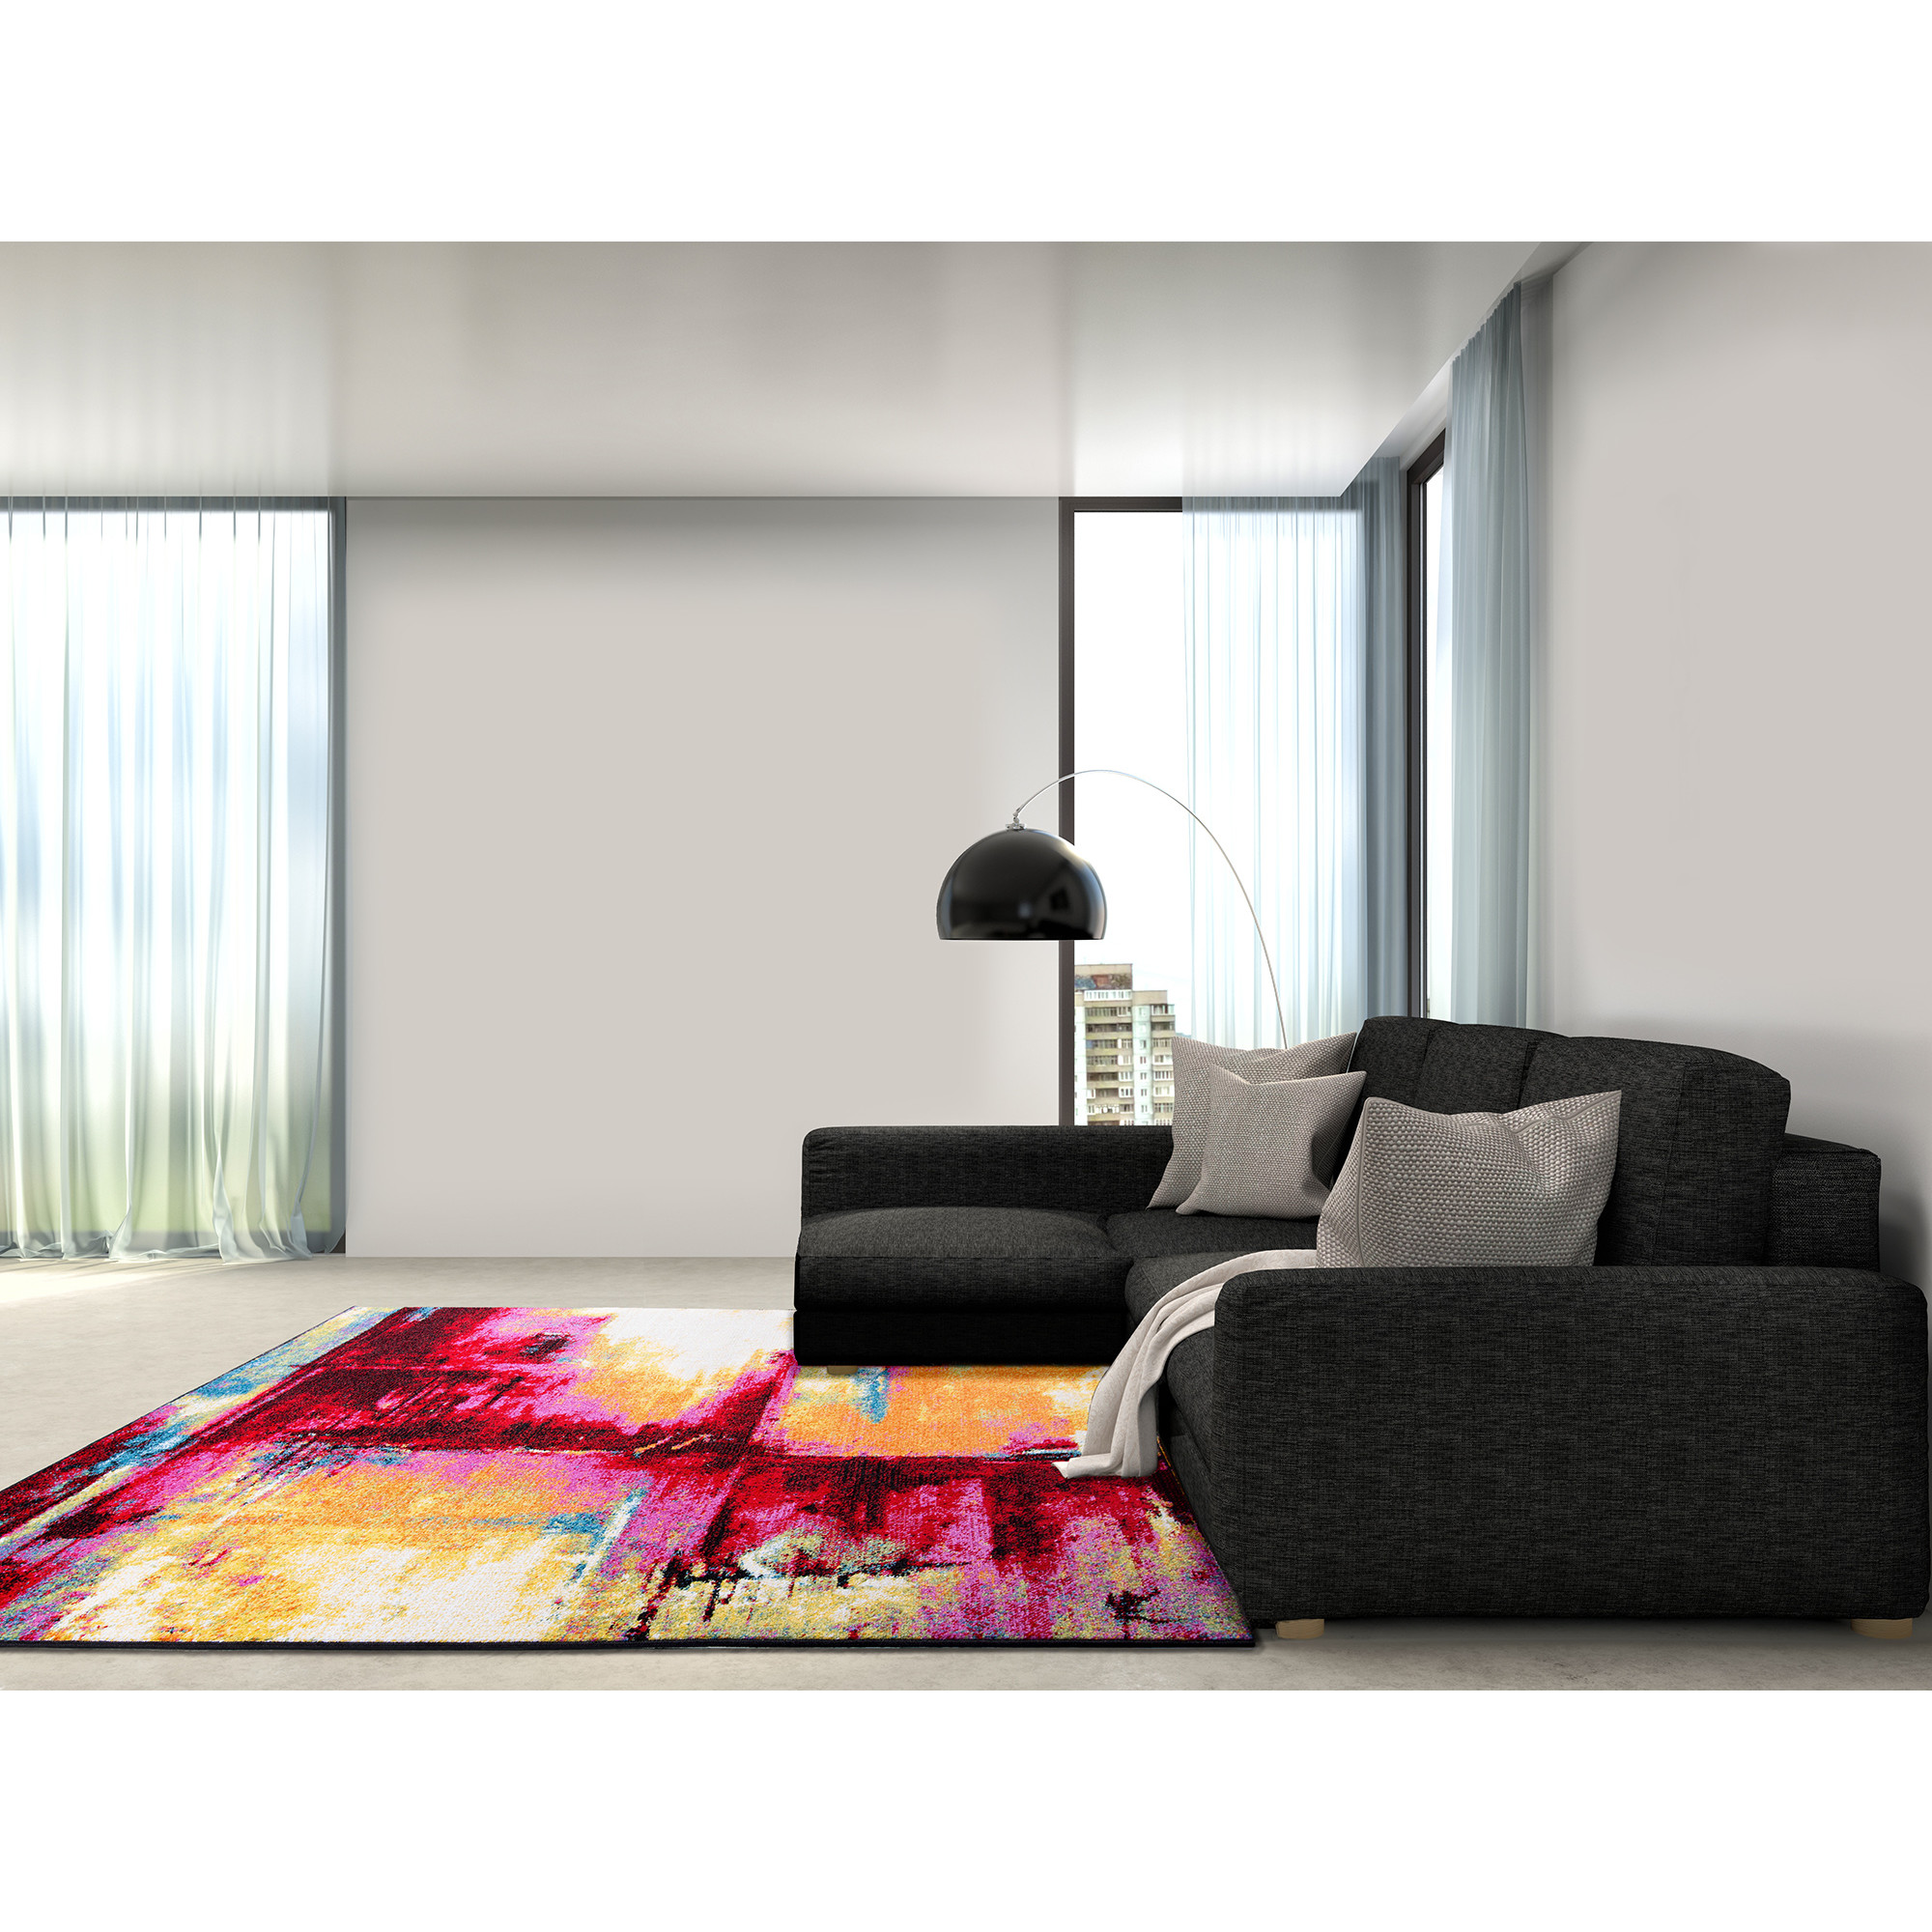 Modern Rug Contemporary Area Rugs Multi Geometric Swirls Lines